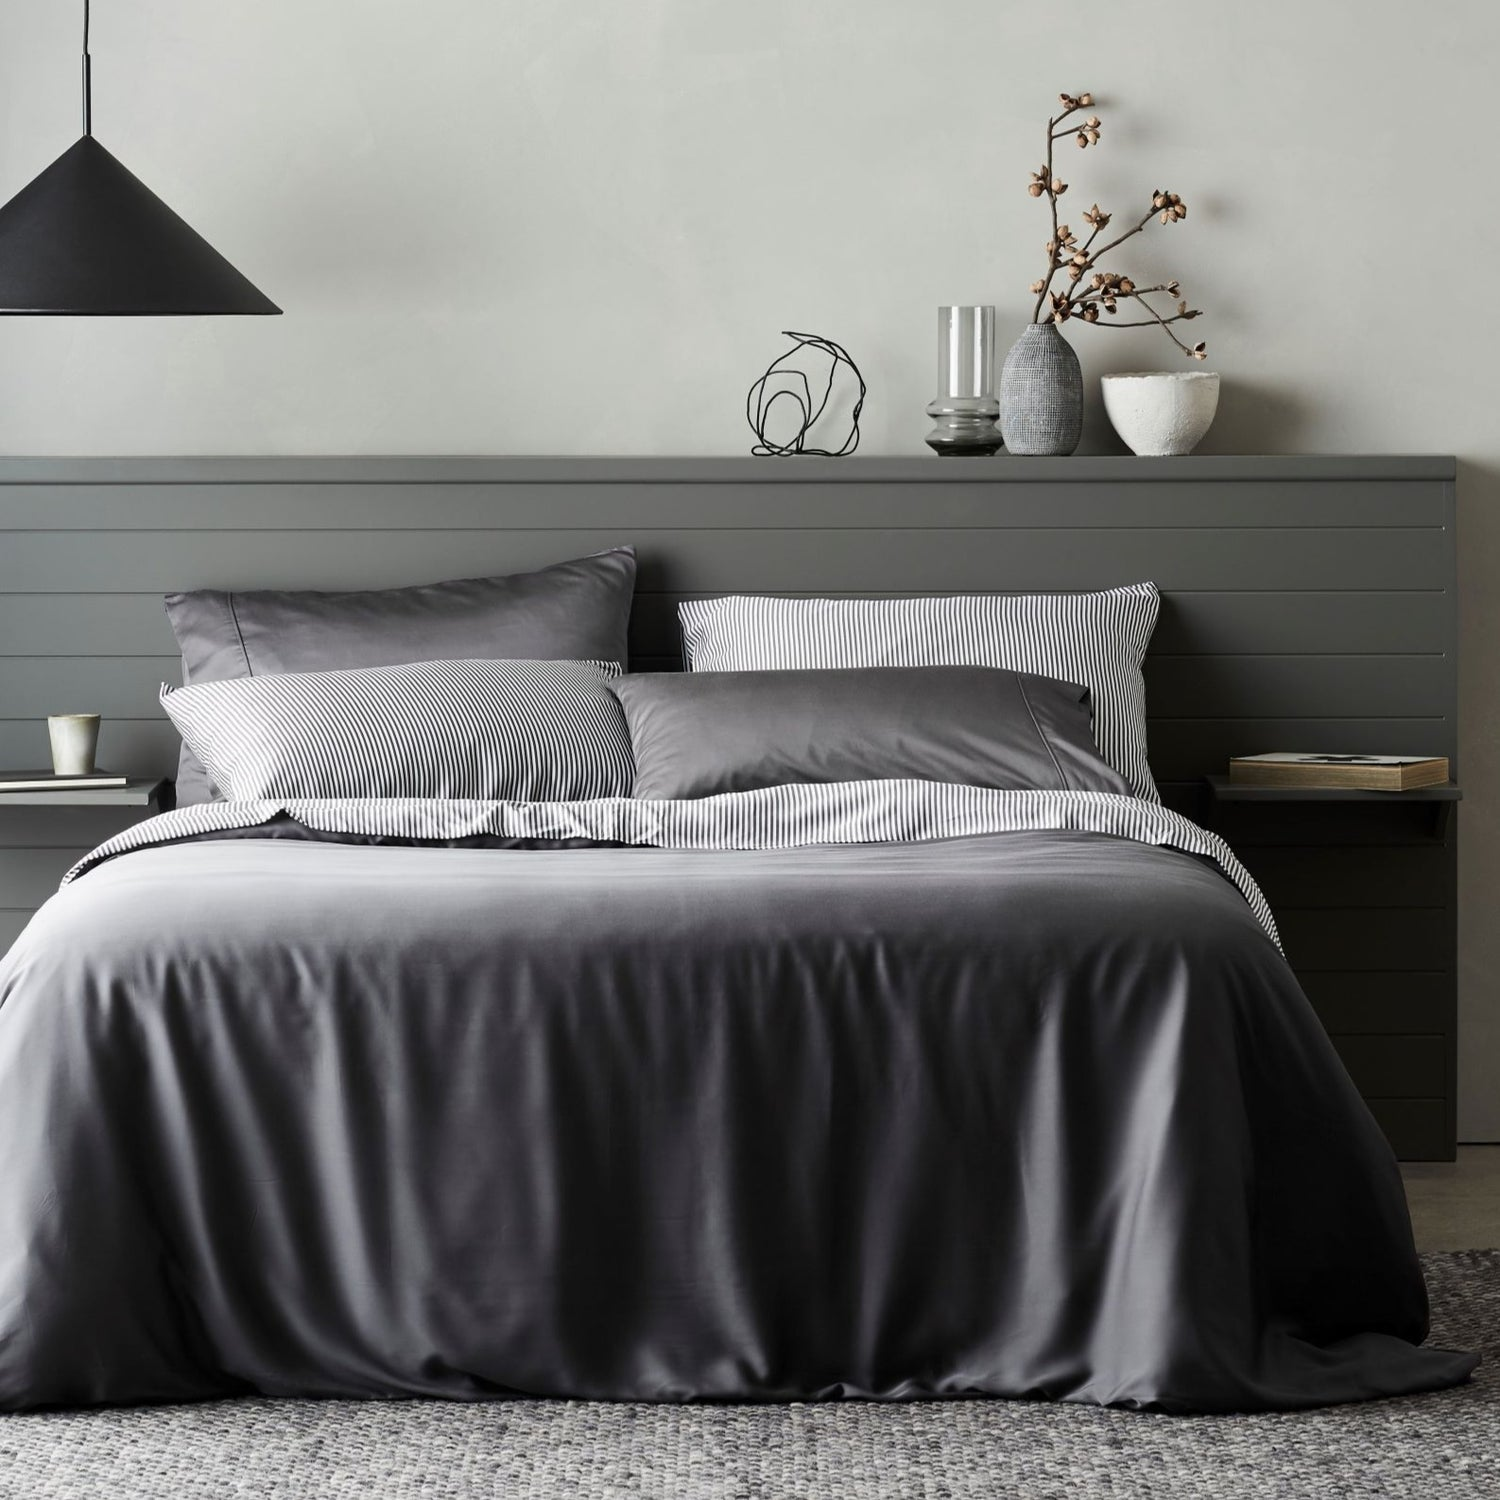 Bamboo Lyocell Duvet Cover - Gray Bedding and Bath Ettitude